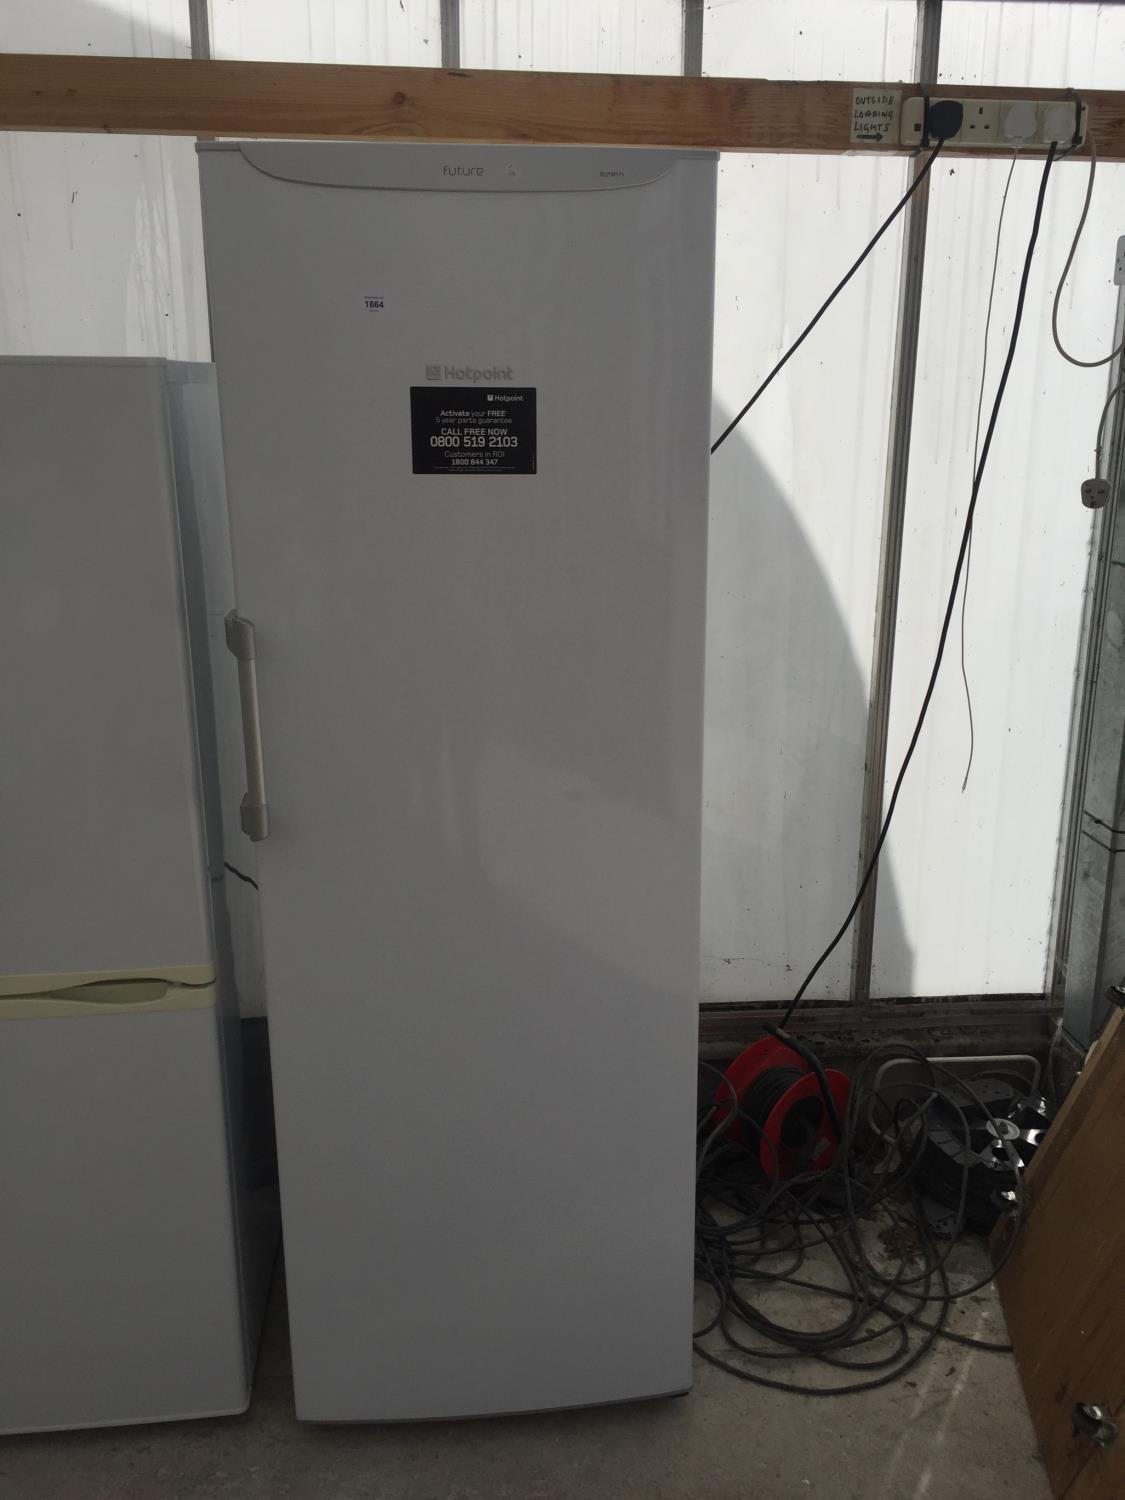 A WHITE HOTPOINT UPRIGHT FRIDGE BELIEVED IN WORKING ORDER BUT NO WARRANTY